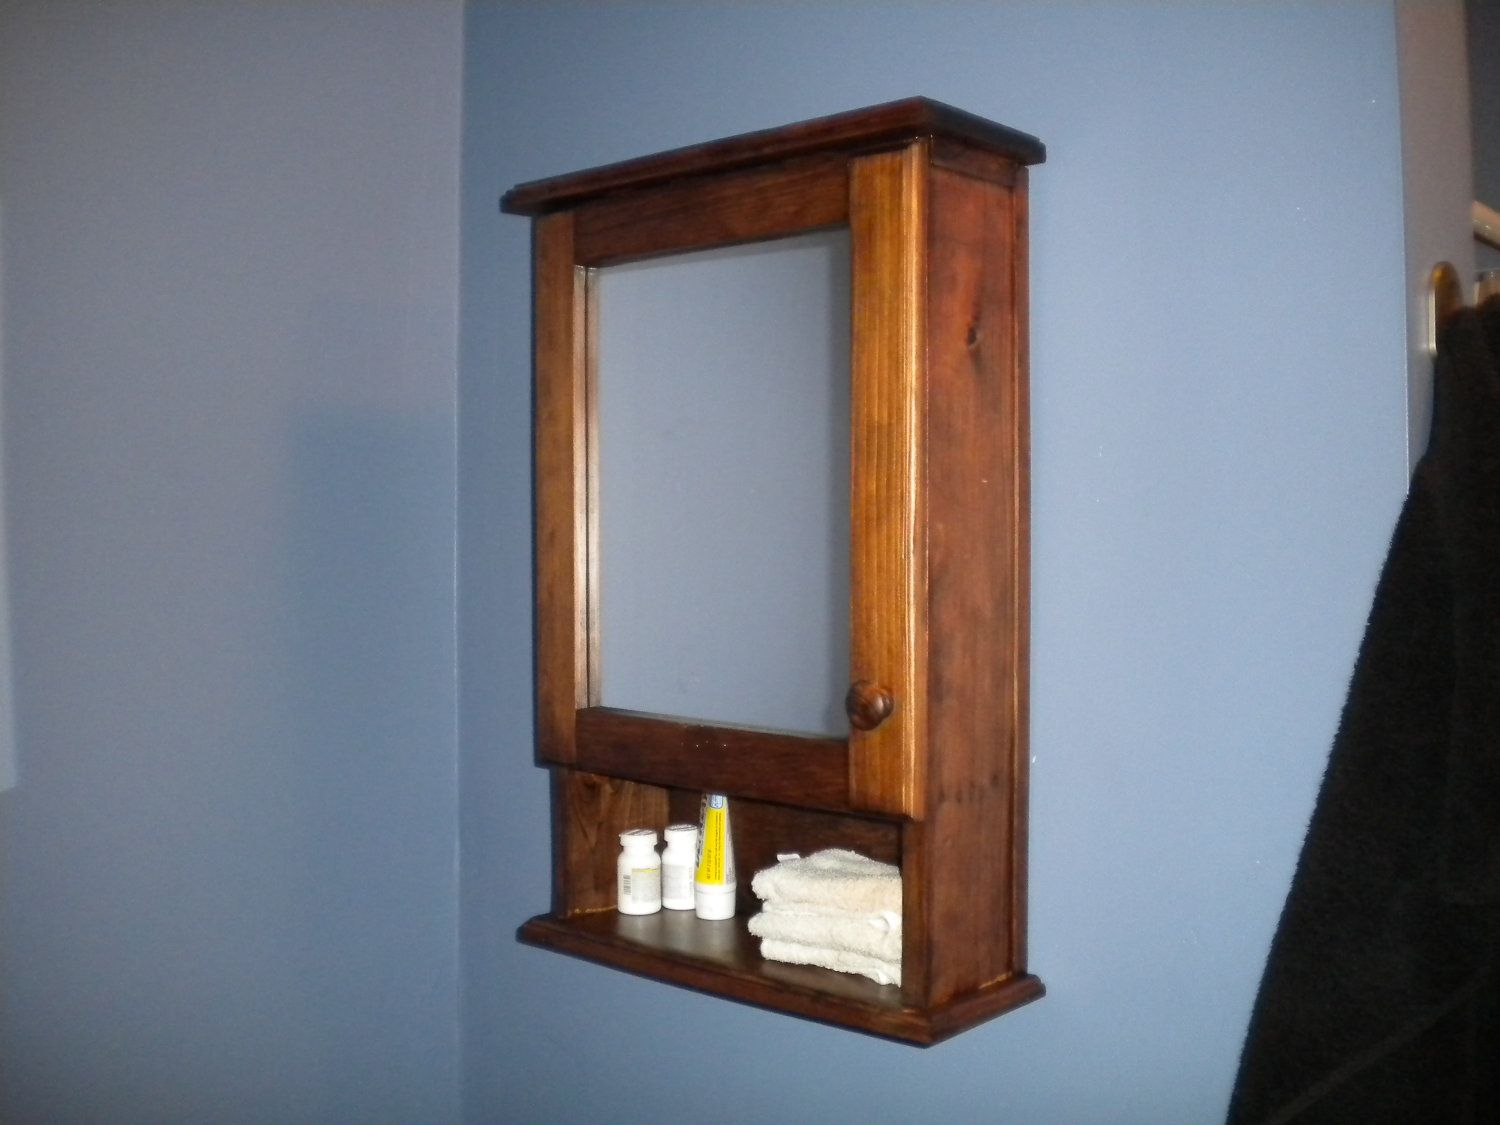 Wall Mounted Medicine Cabinet No Mirror Bathrooms Wood within size 1500 X 1125